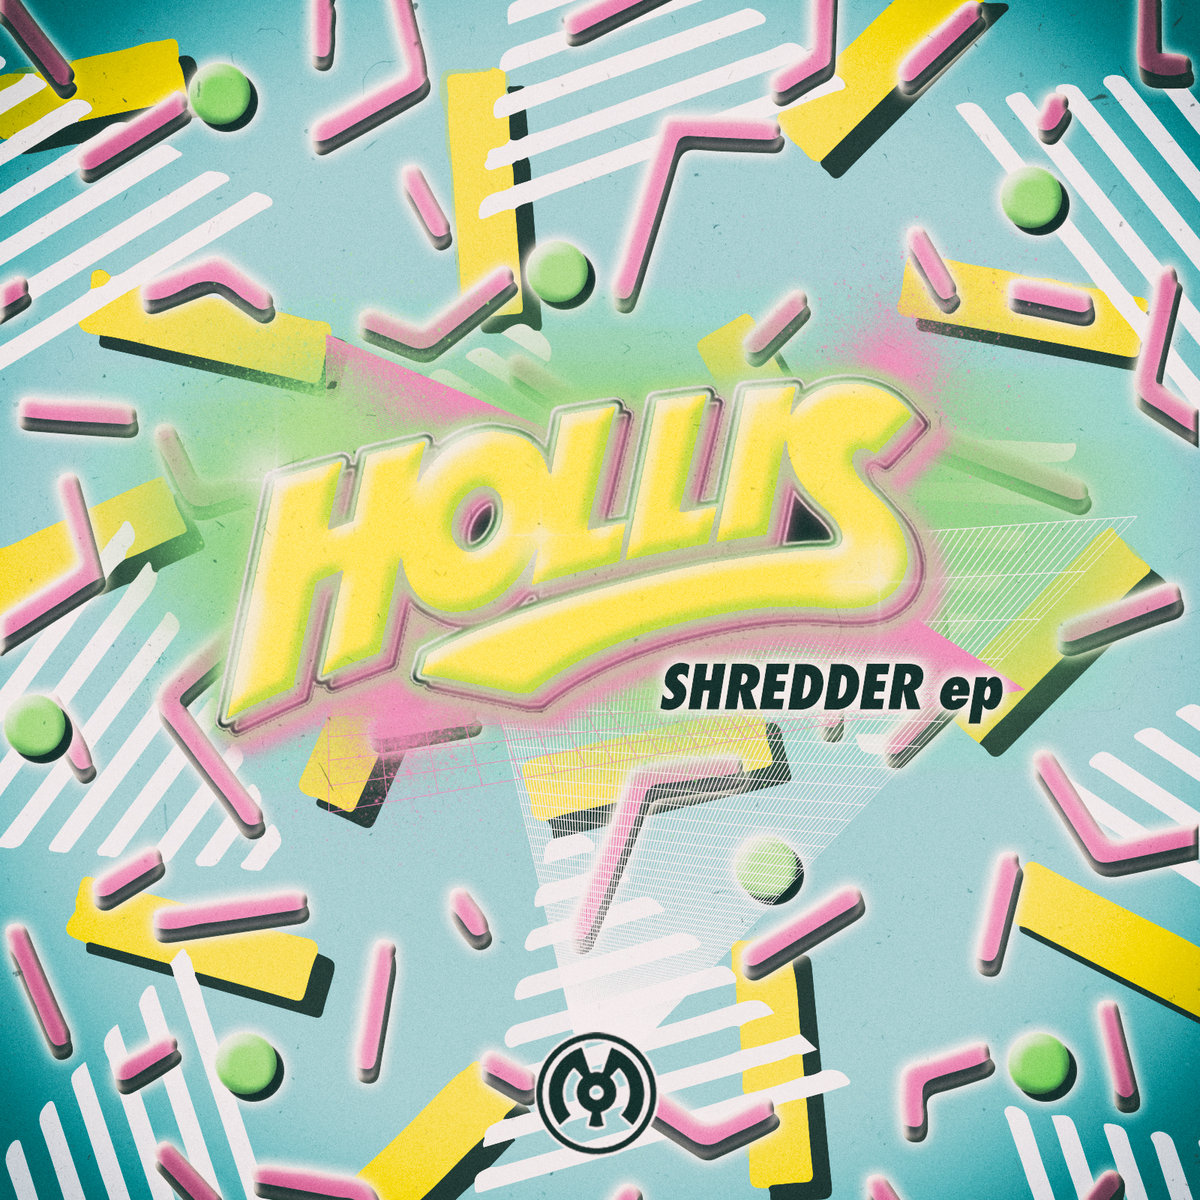 Hollis feat. JustLuv - On Fleek @ 'Shredder EP' album (electronic, dubstep)